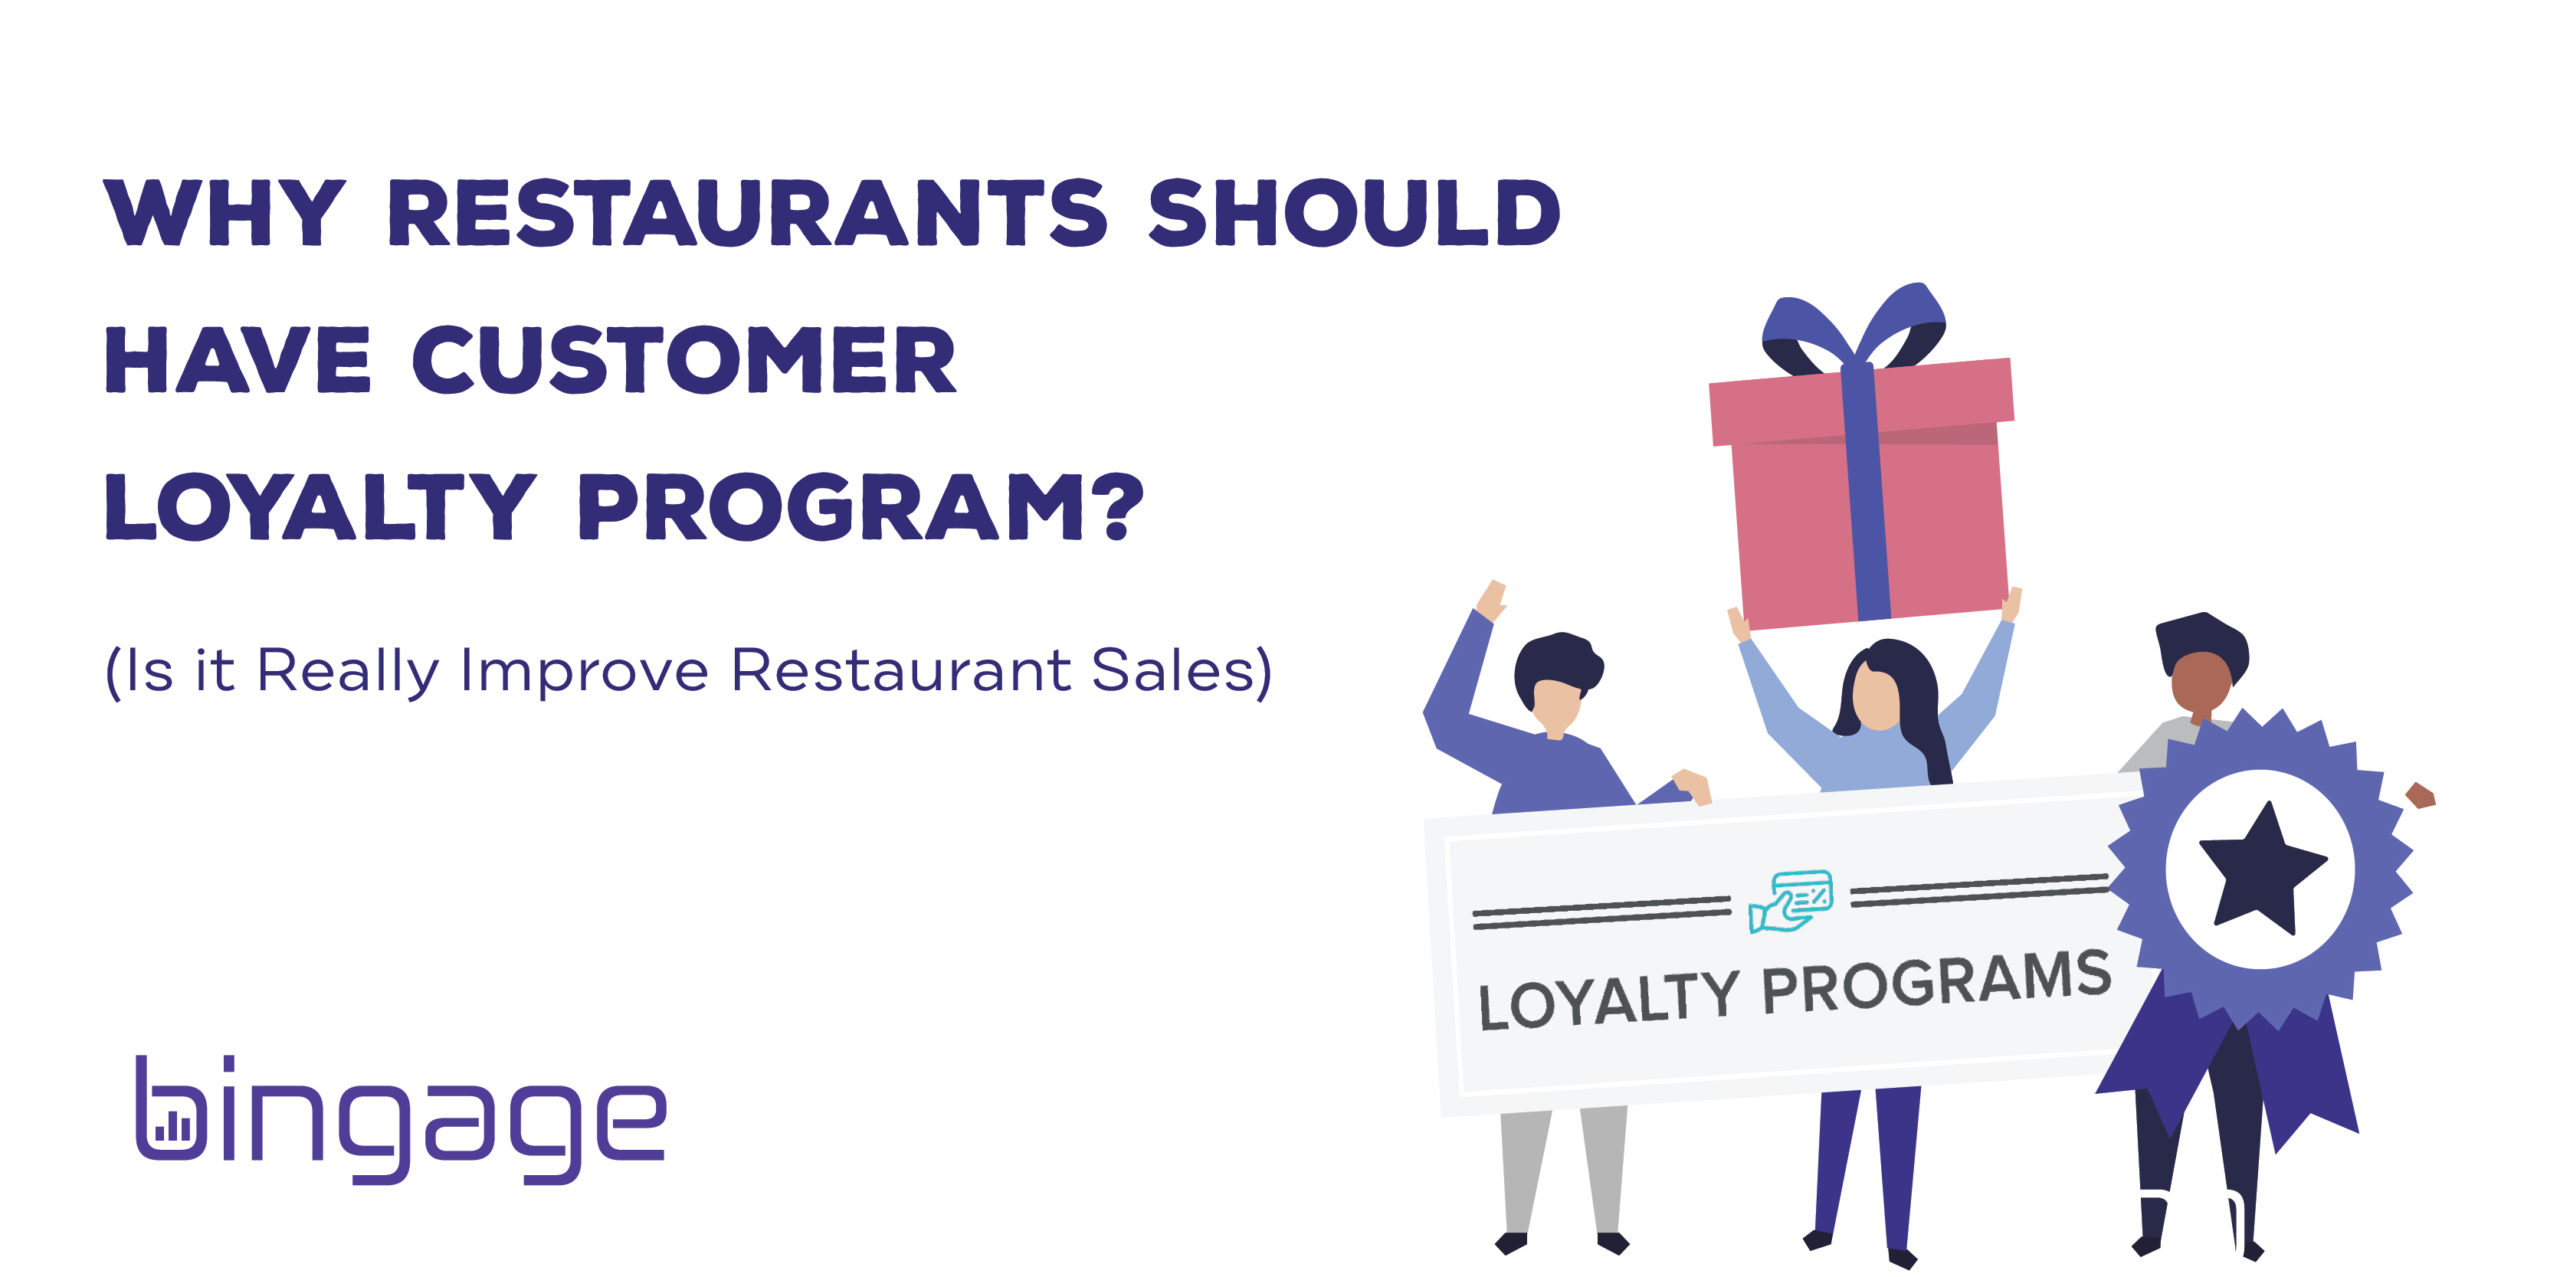 Restaurant Loyalty Program; Is It Really Effective? (Here is your answer)